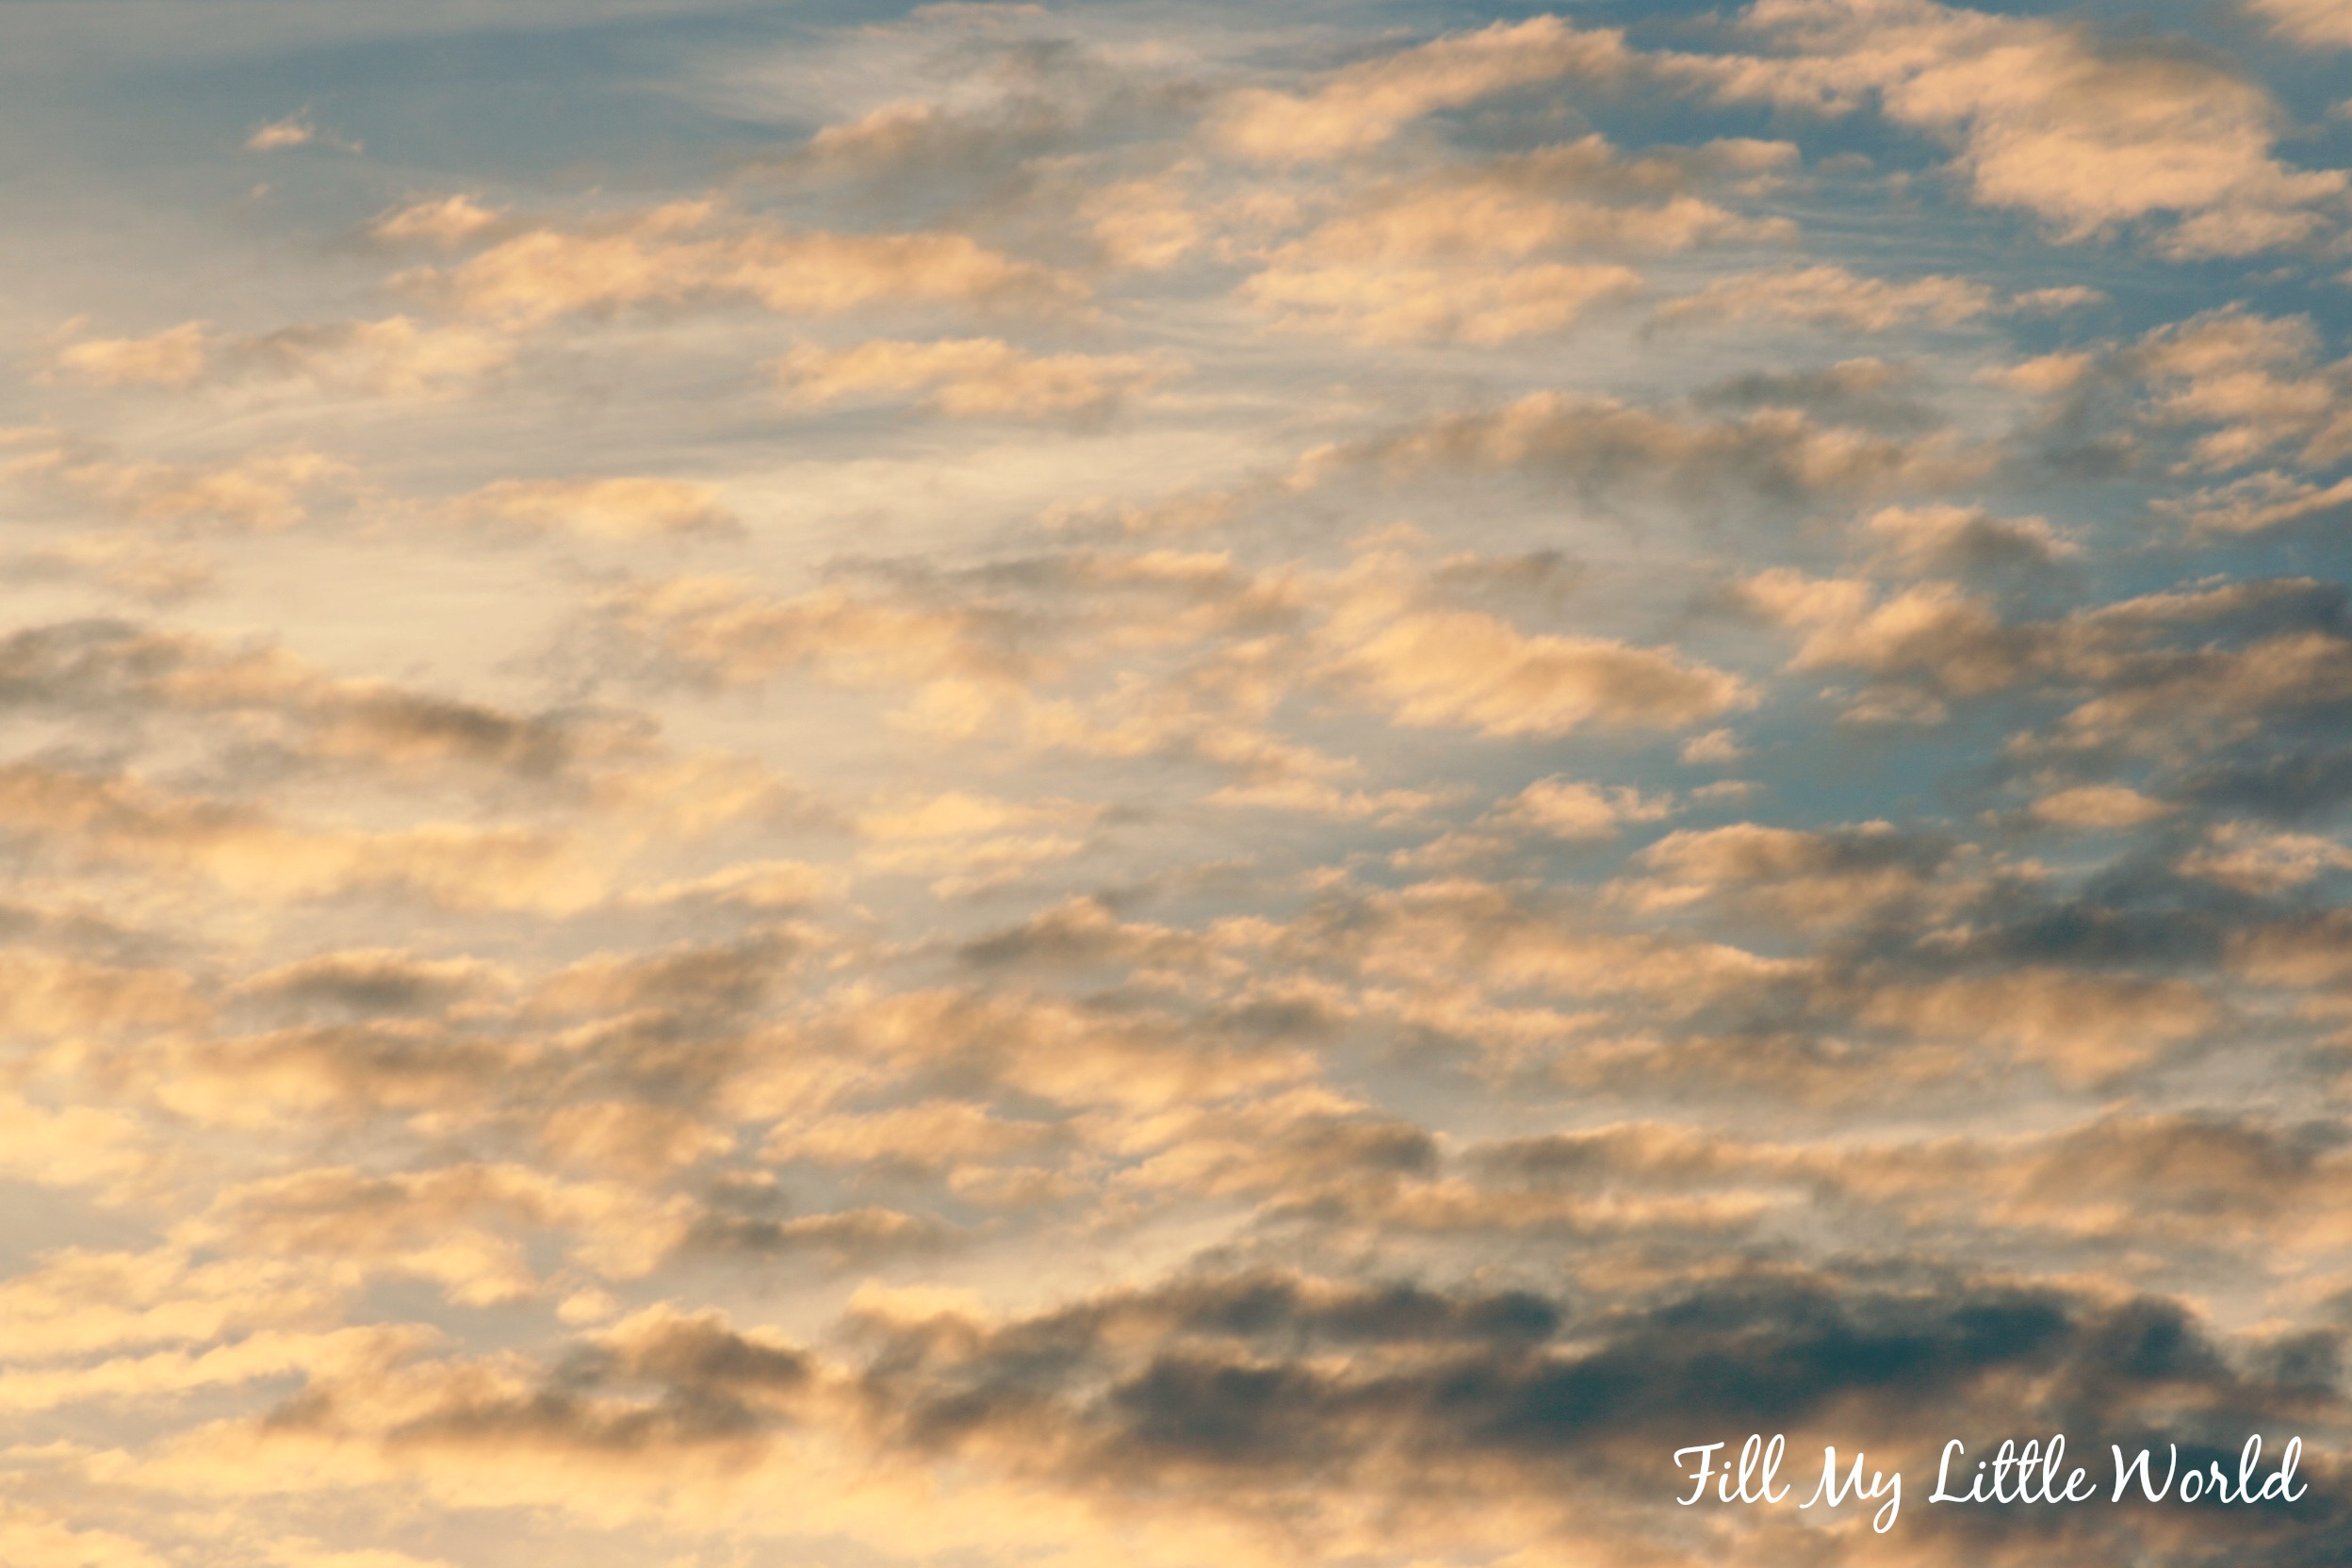 Fill My Little World sky clouds